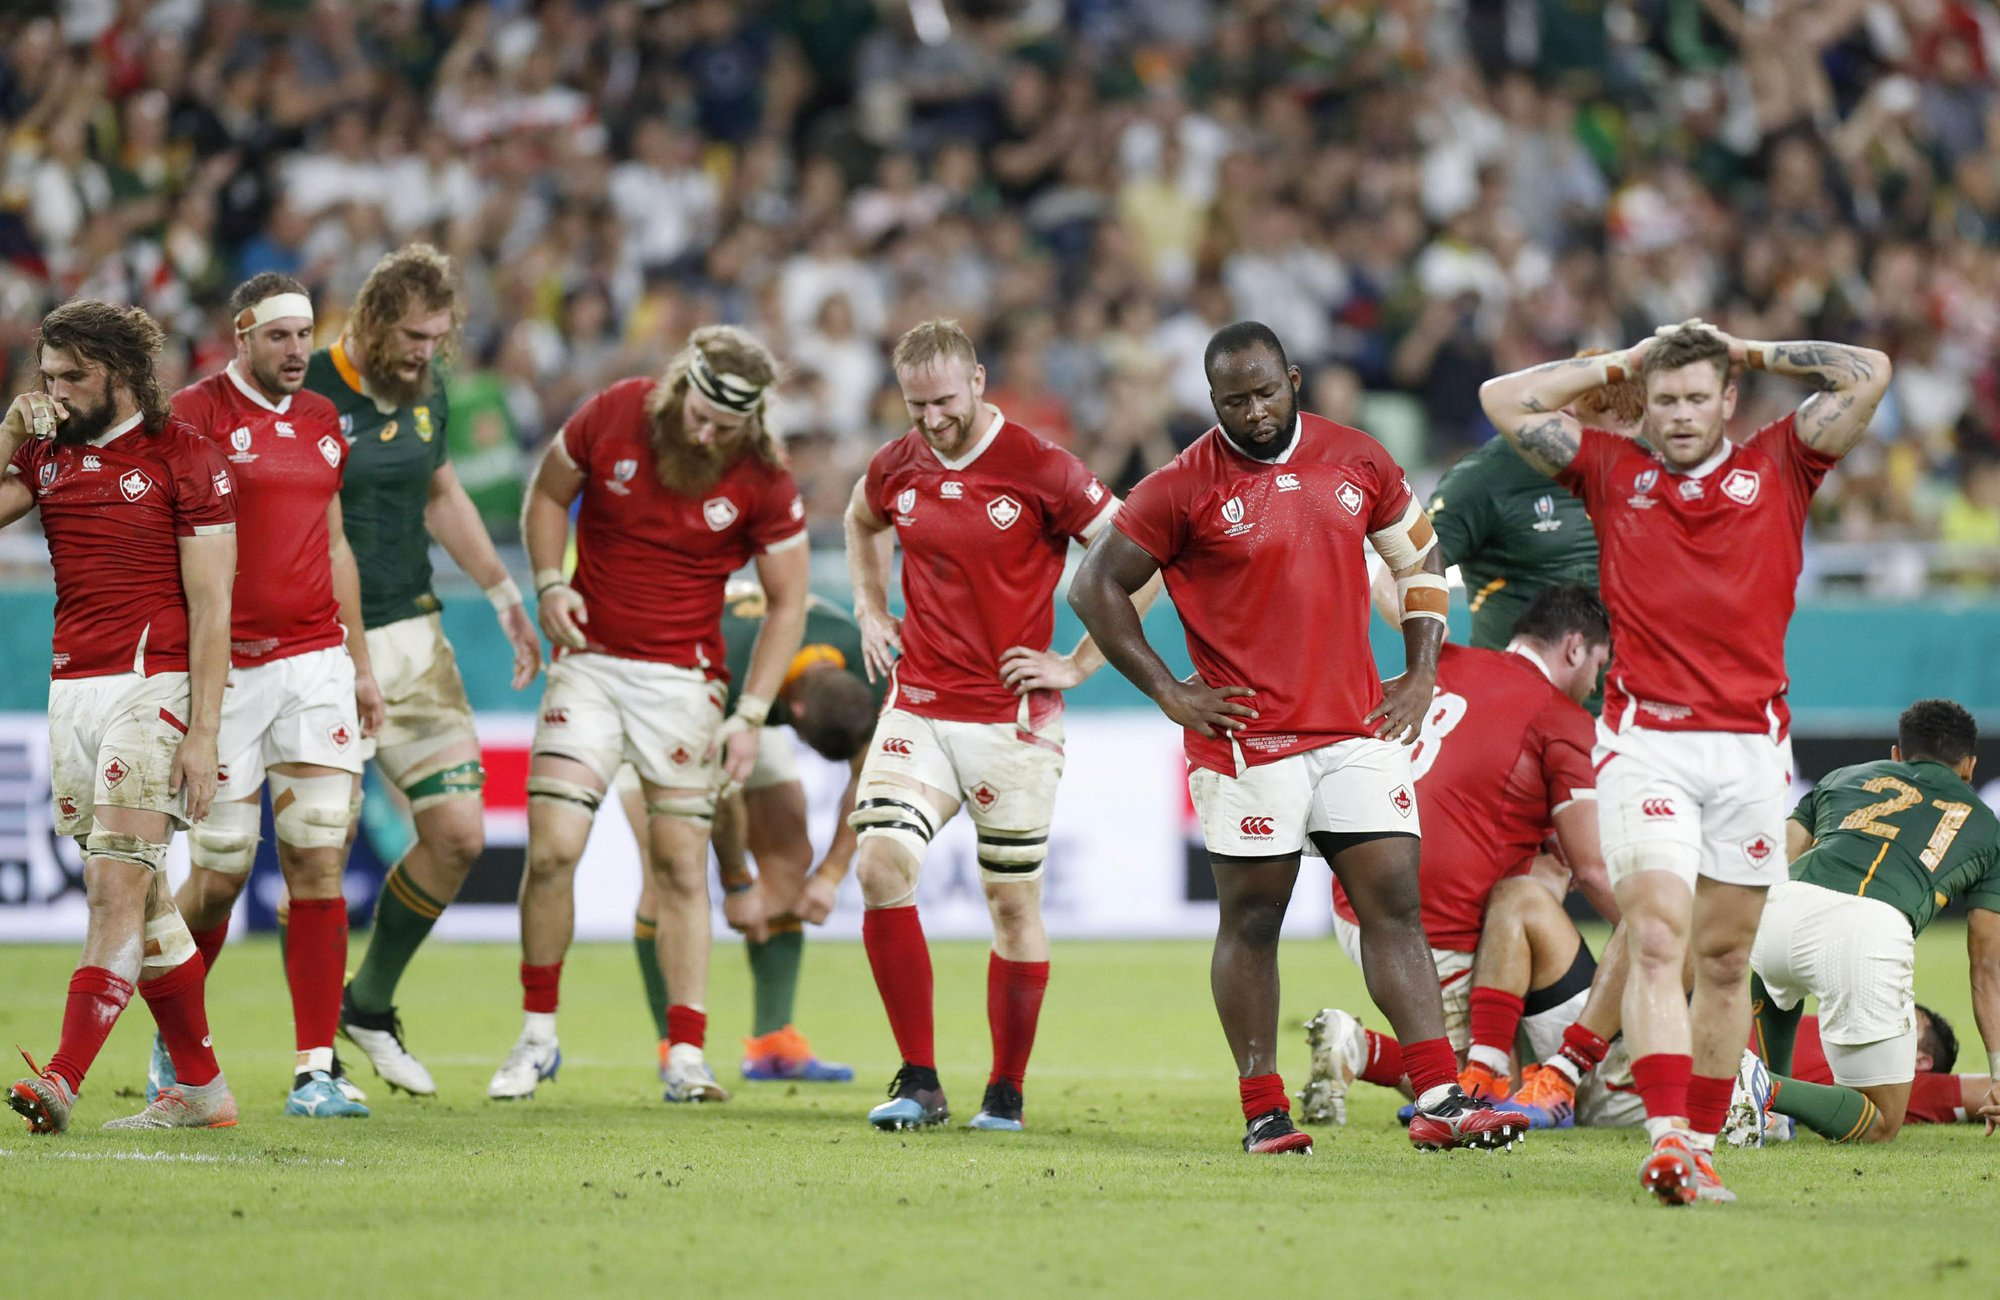 Namibia, Canada rue missed shot at rare Rugby World Cup win